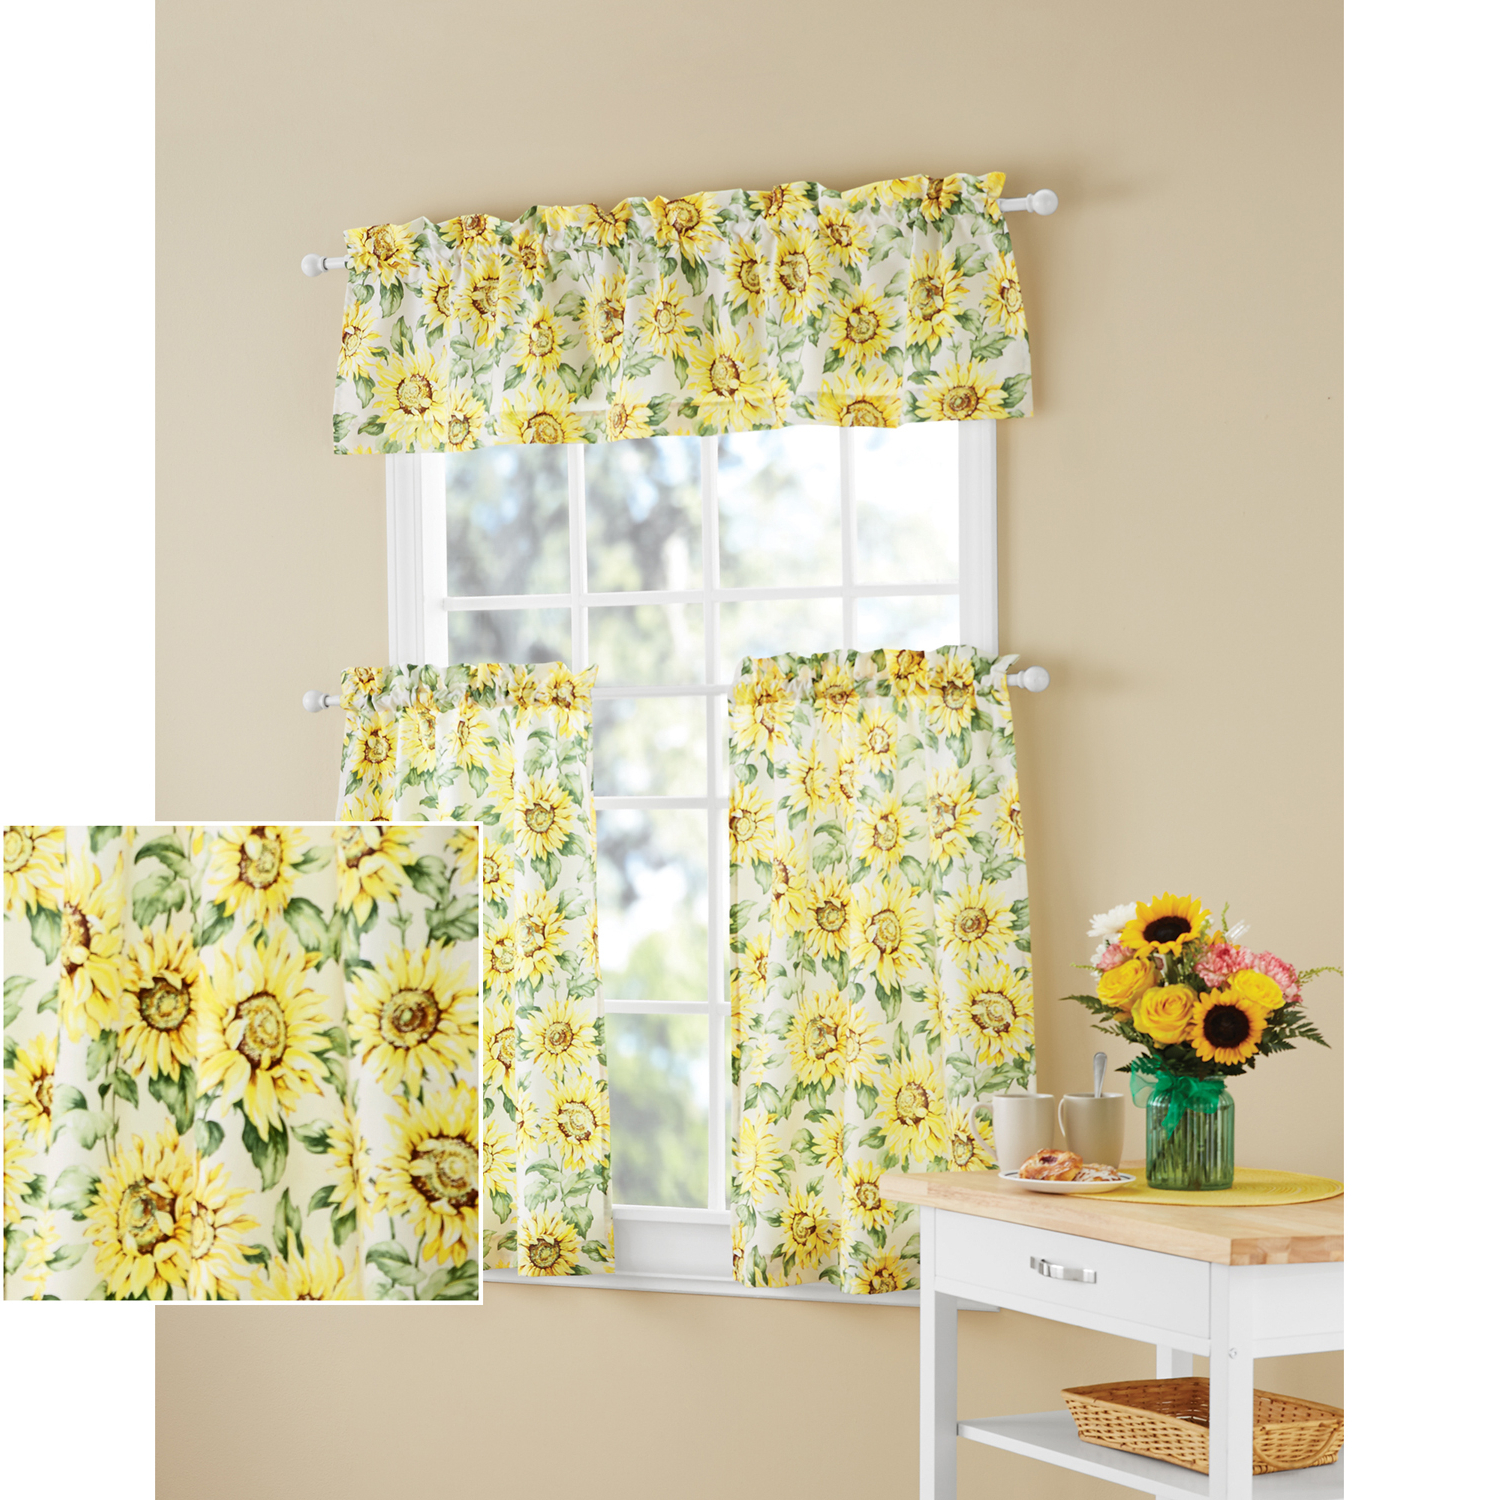 Latest Details About Sunflower 3 Piece Kitchen Curtain Tier And Valance Set Home Decor Room Window With Grey Window Curtain Tier And Valance Sets (View 11 of 20)